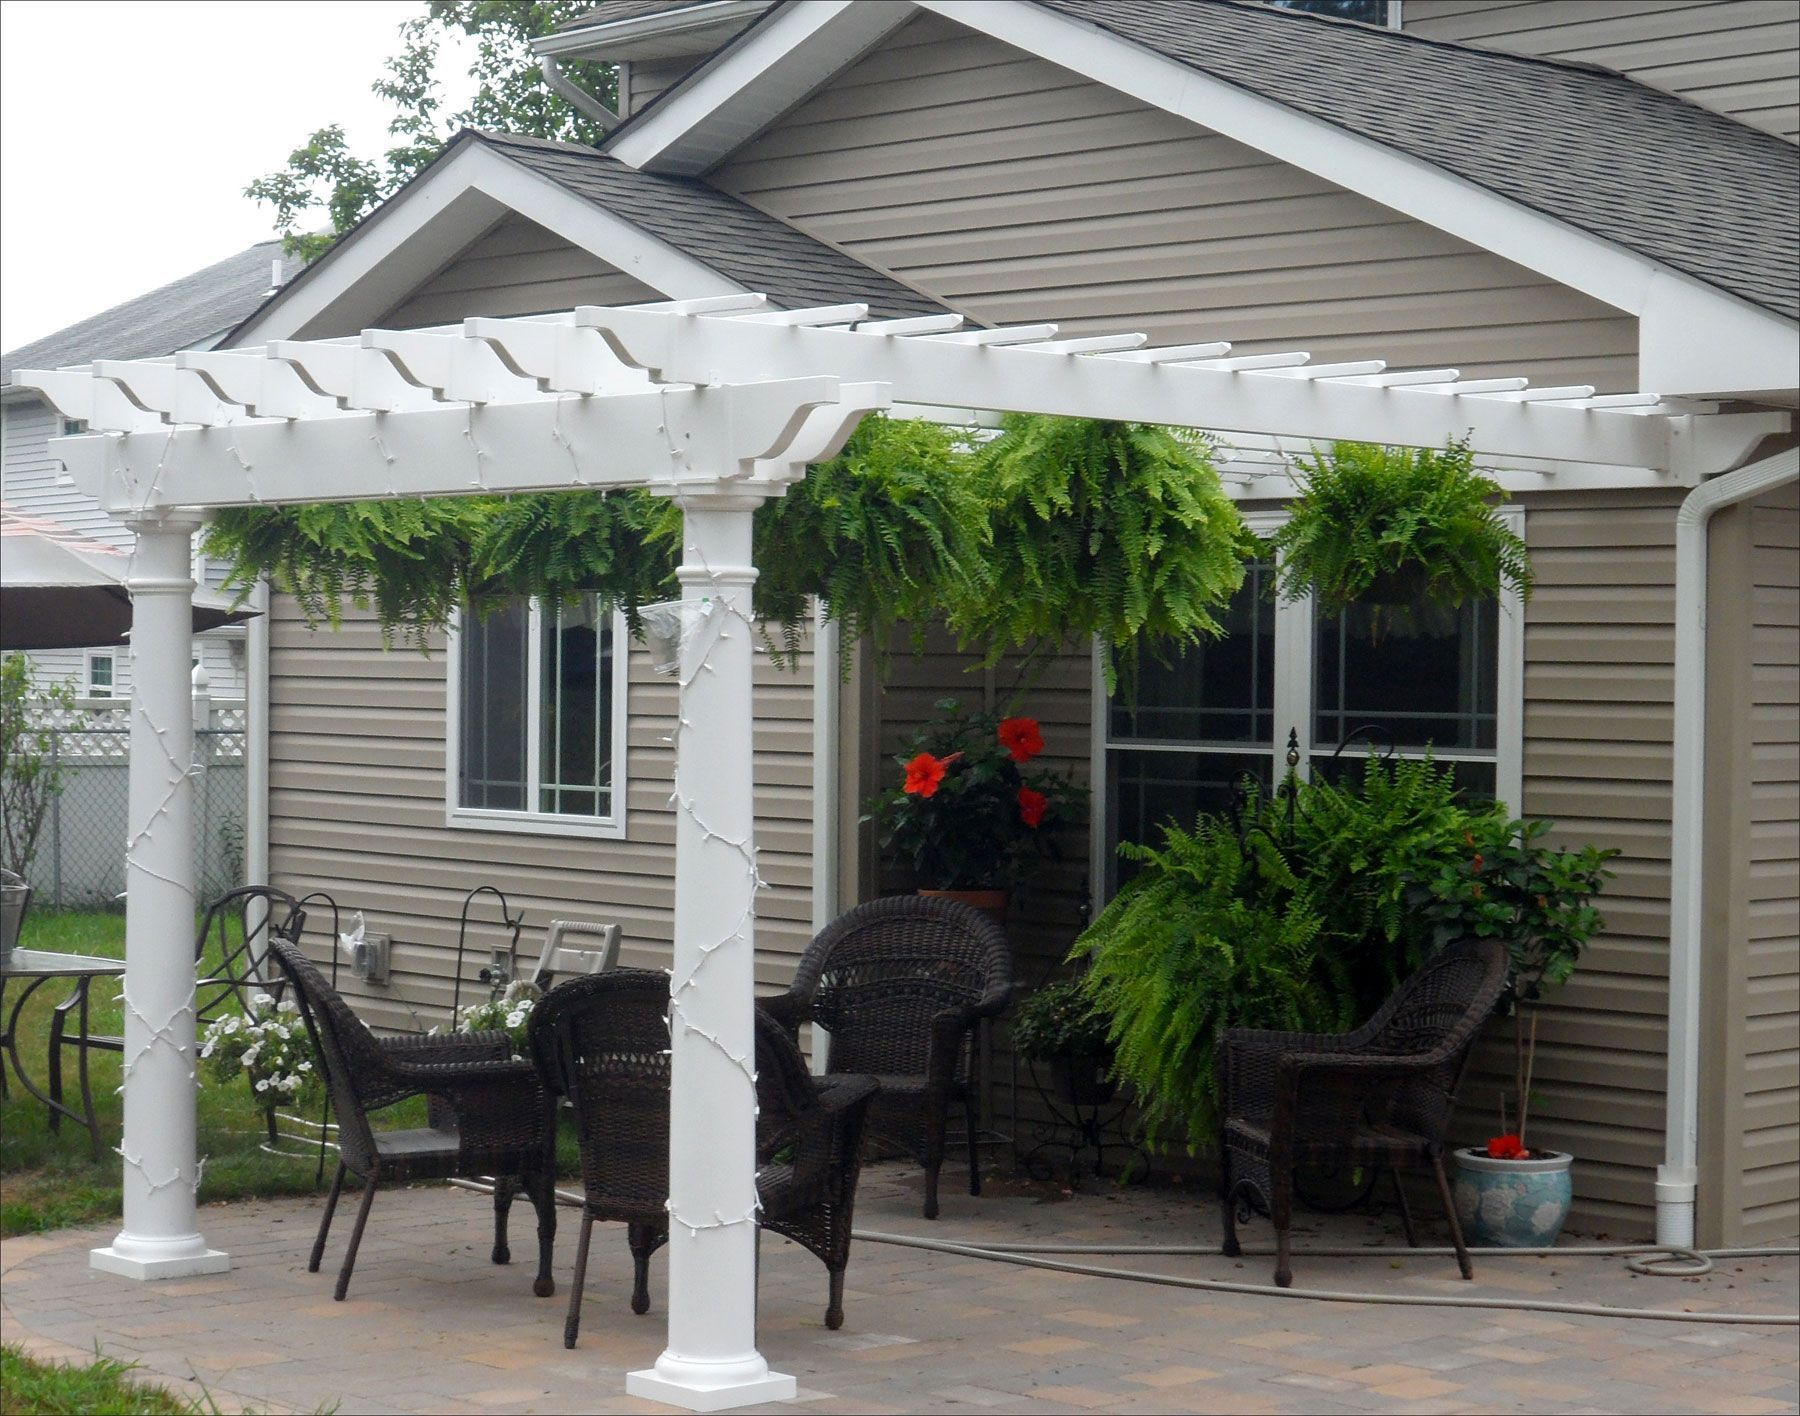 8 X 12 Vinyl 2 Beam Pergola Shown With Wall Mounted Kit No Deck 8 Round Tapered Vinyl Columns And 12 Top Runner Spacing Ide